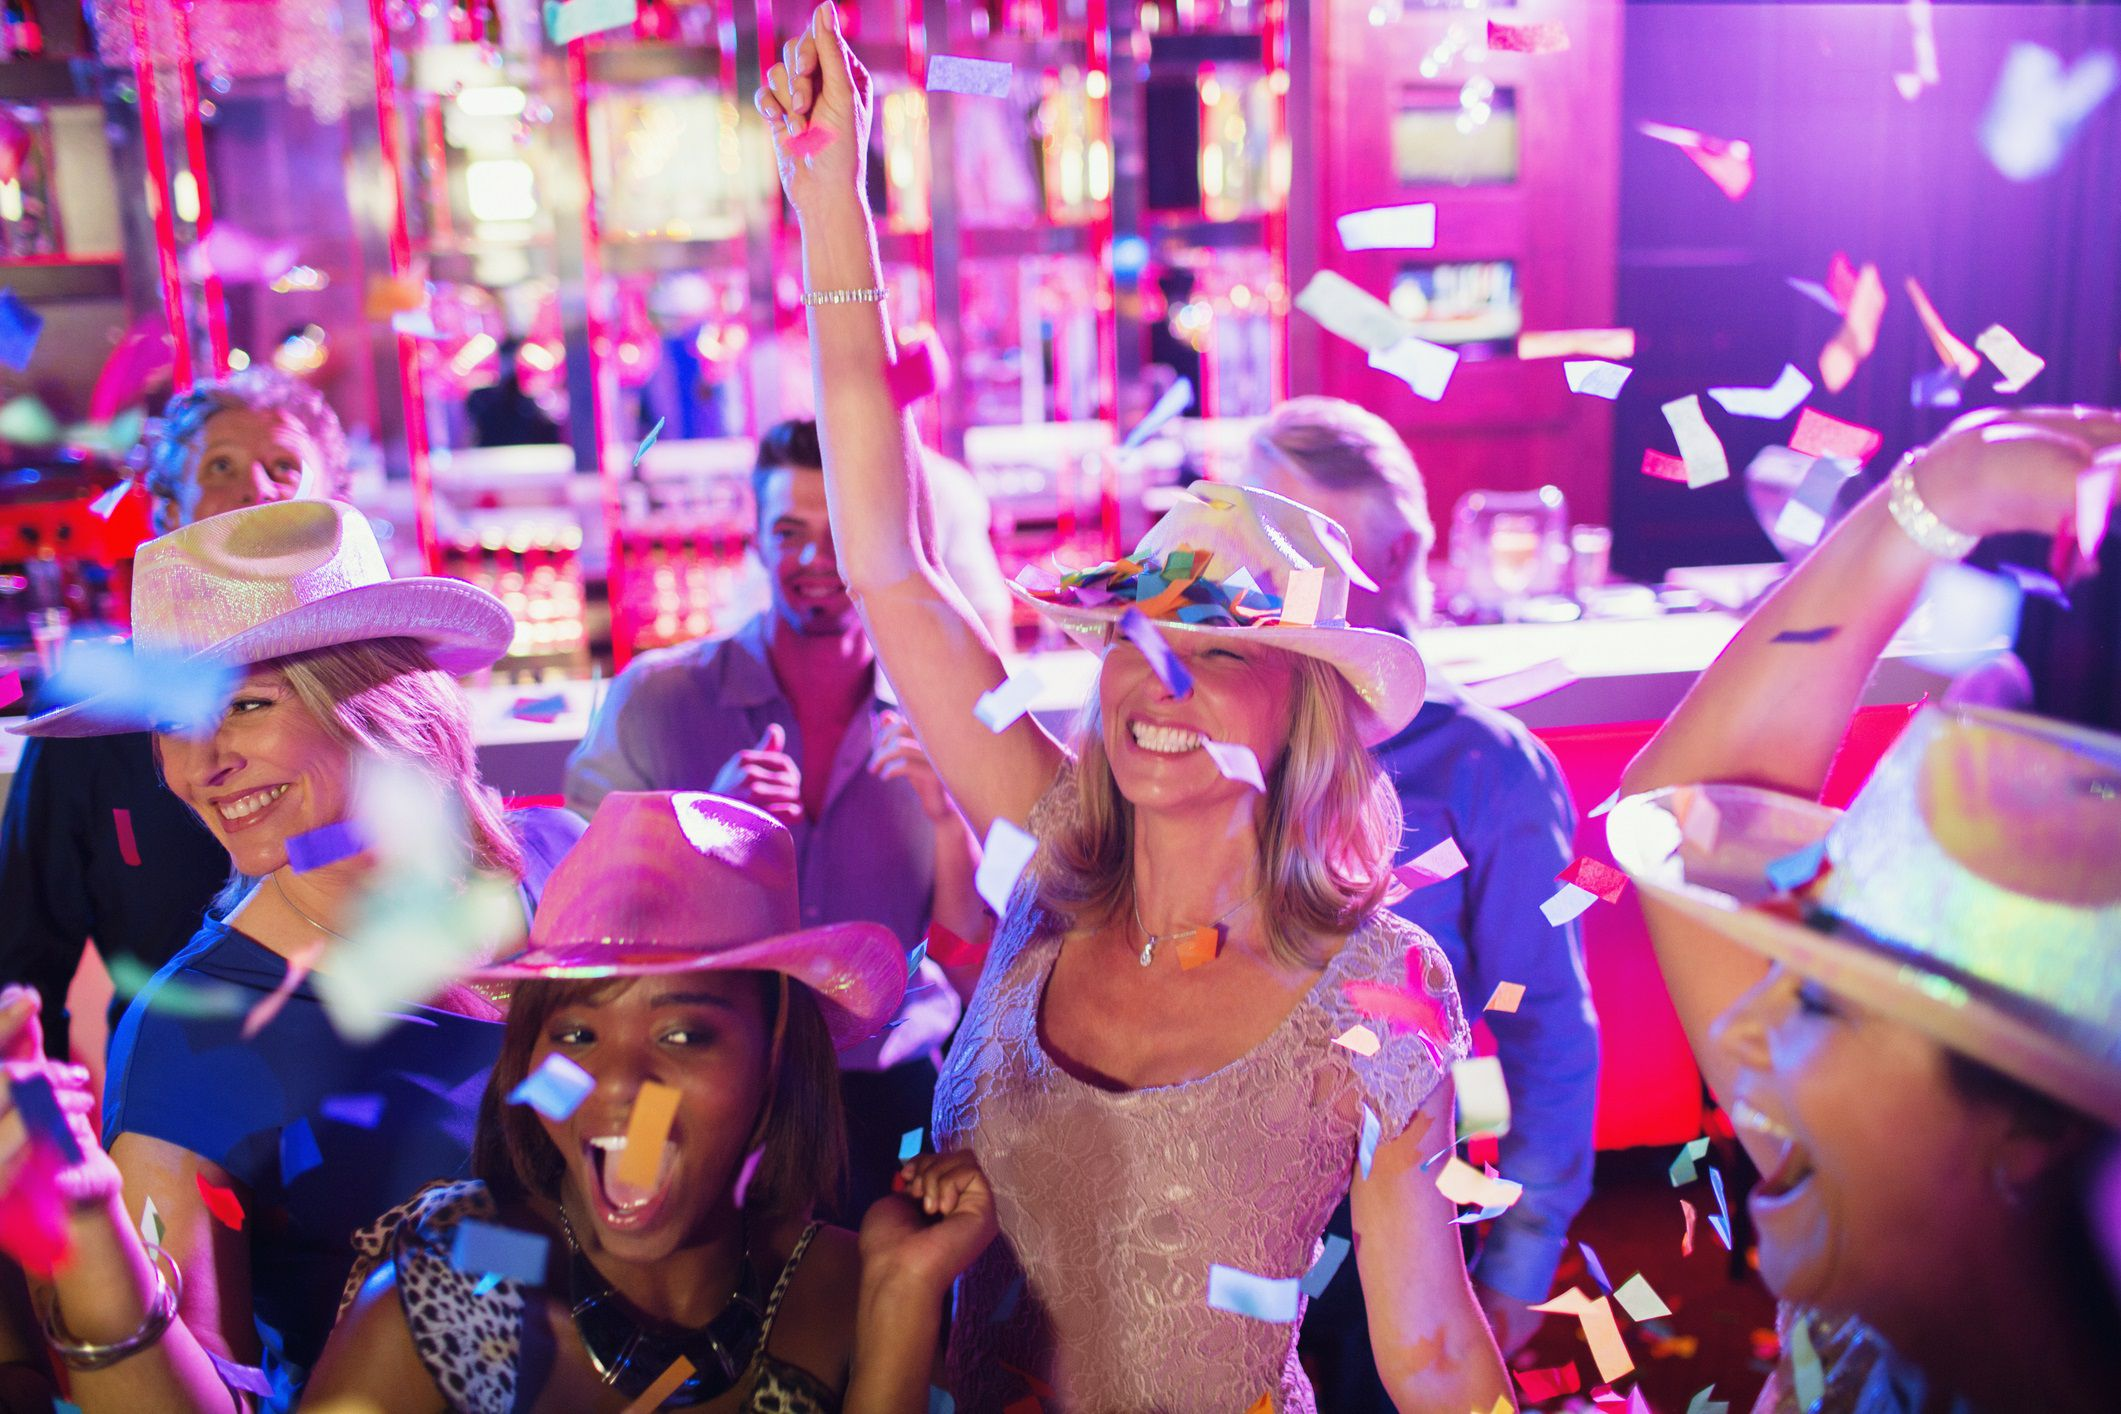 Fun Activities And Themes For Bachelorette Parties